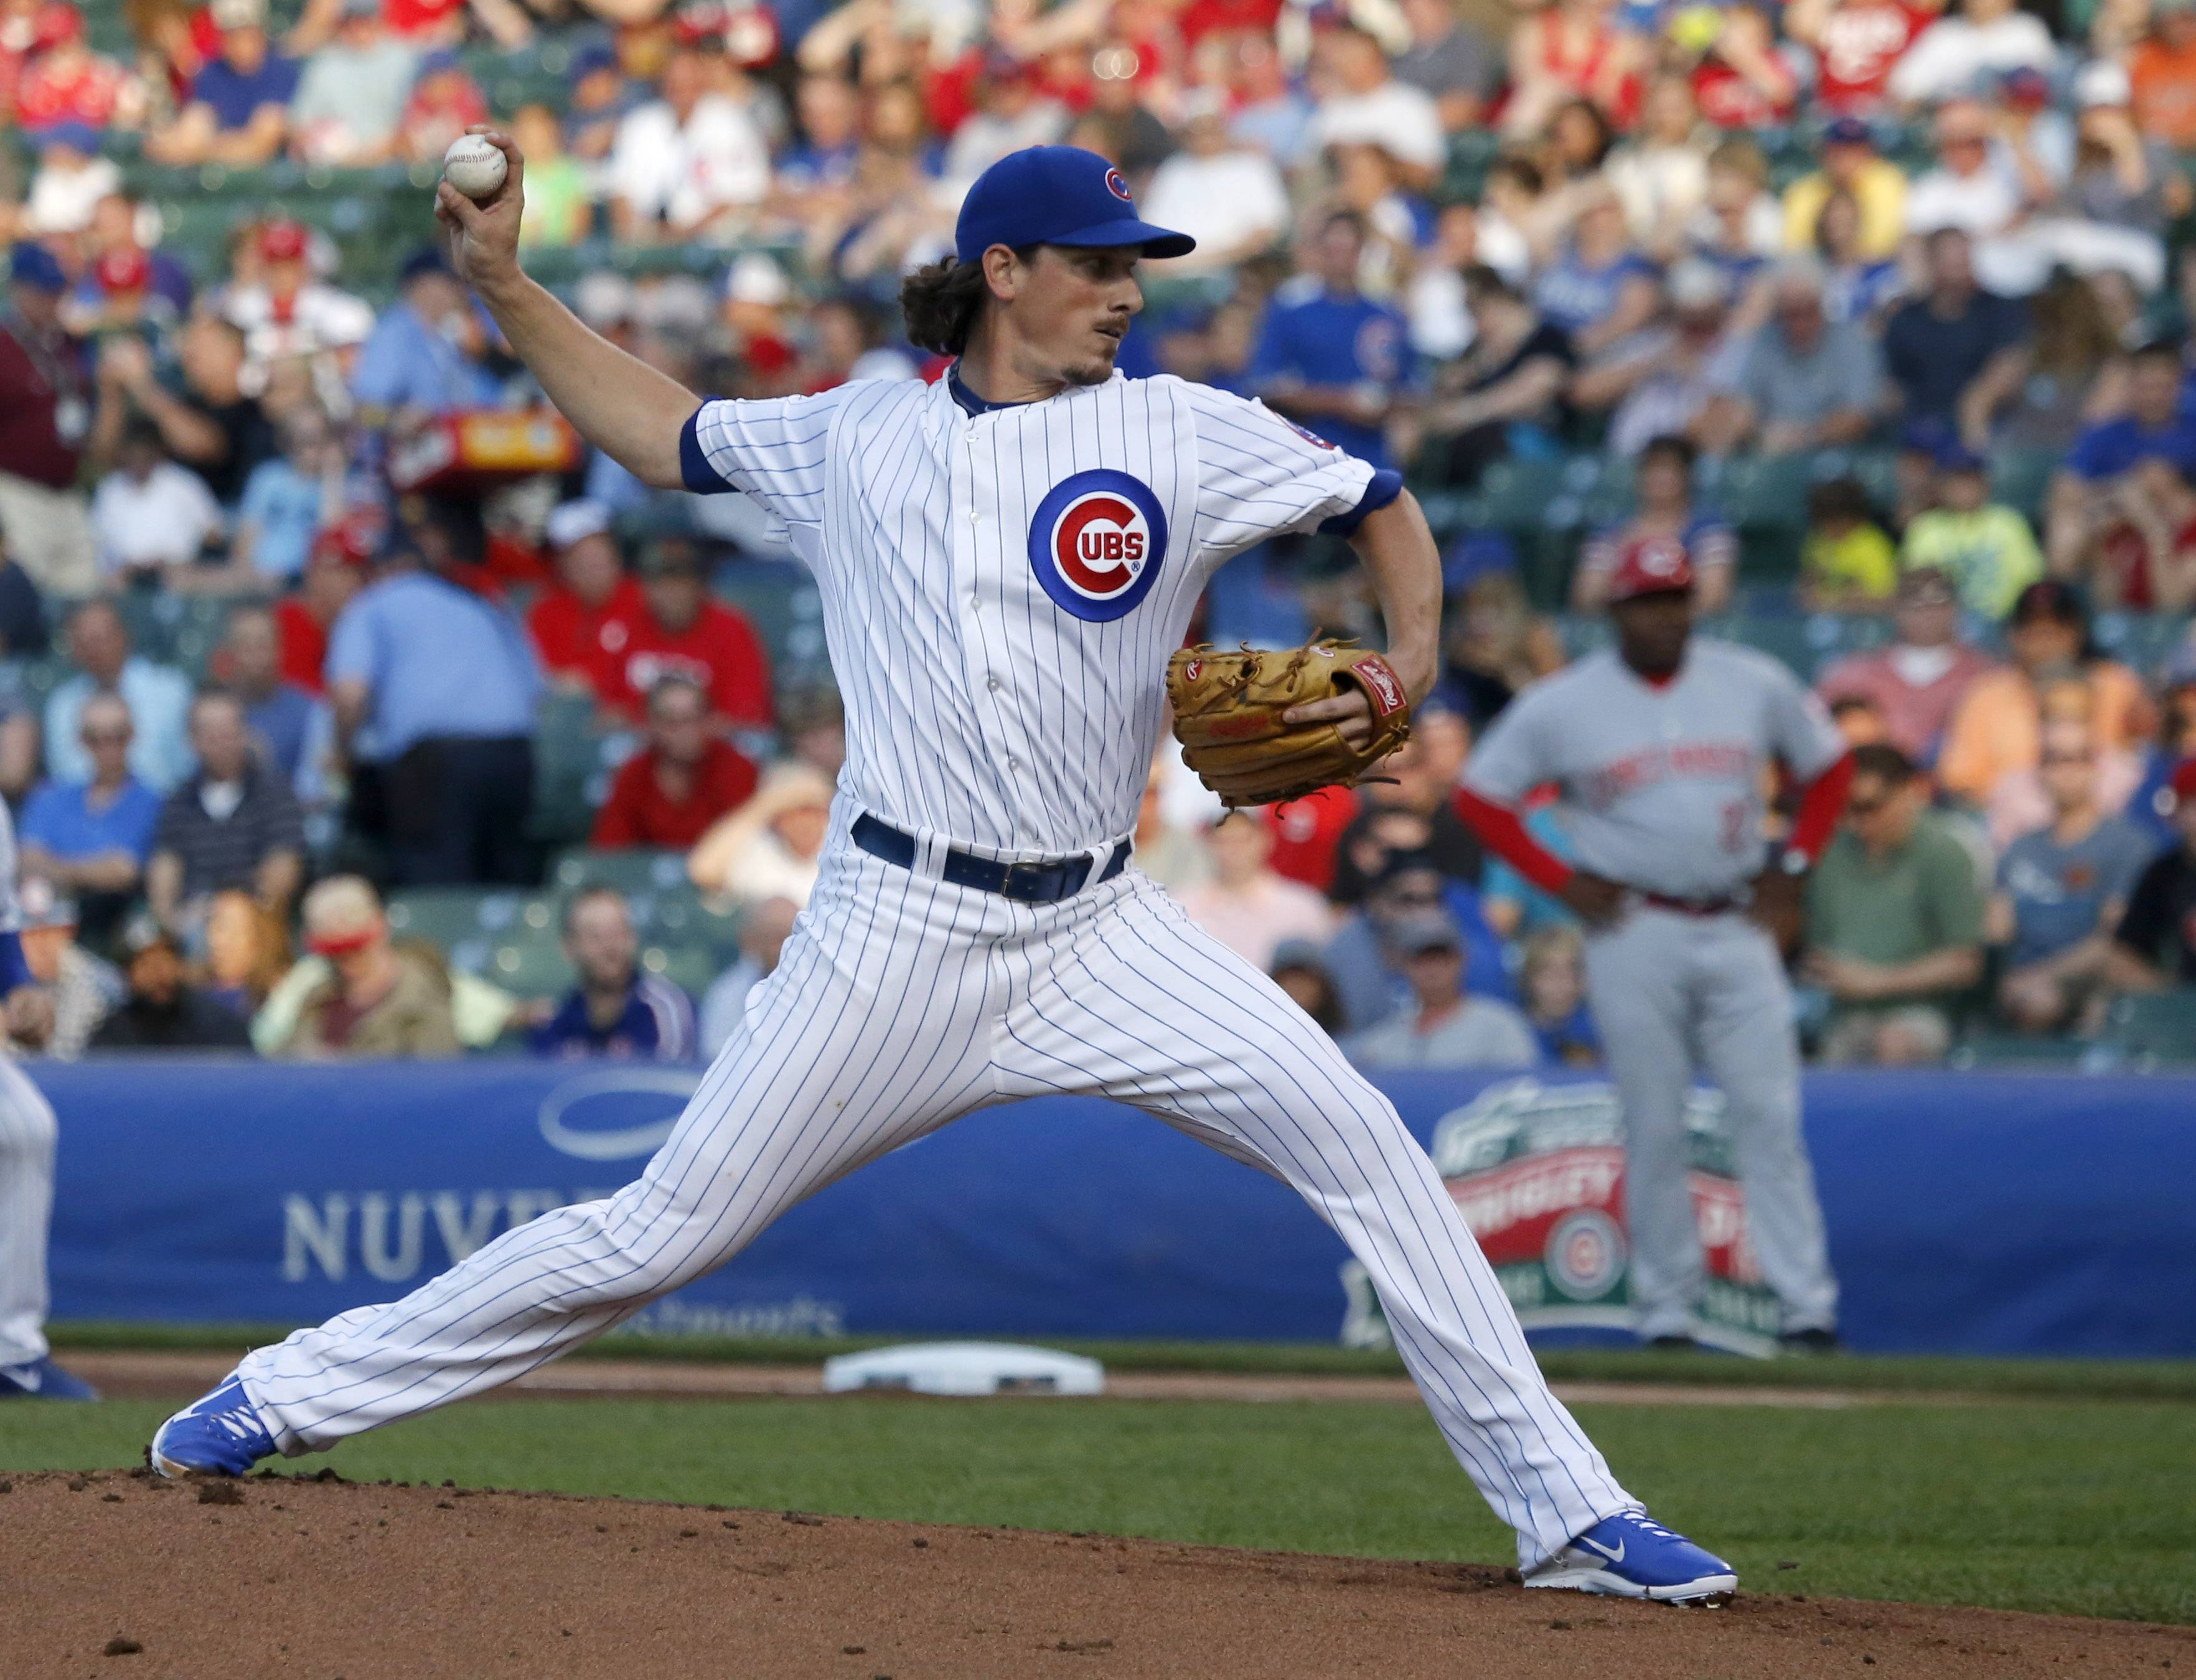 Chicago Cubs starting pitcher Jeff Samardzija delivers during the first inning of a baseball game Monday against the Cincinnati Reds in Chicago.